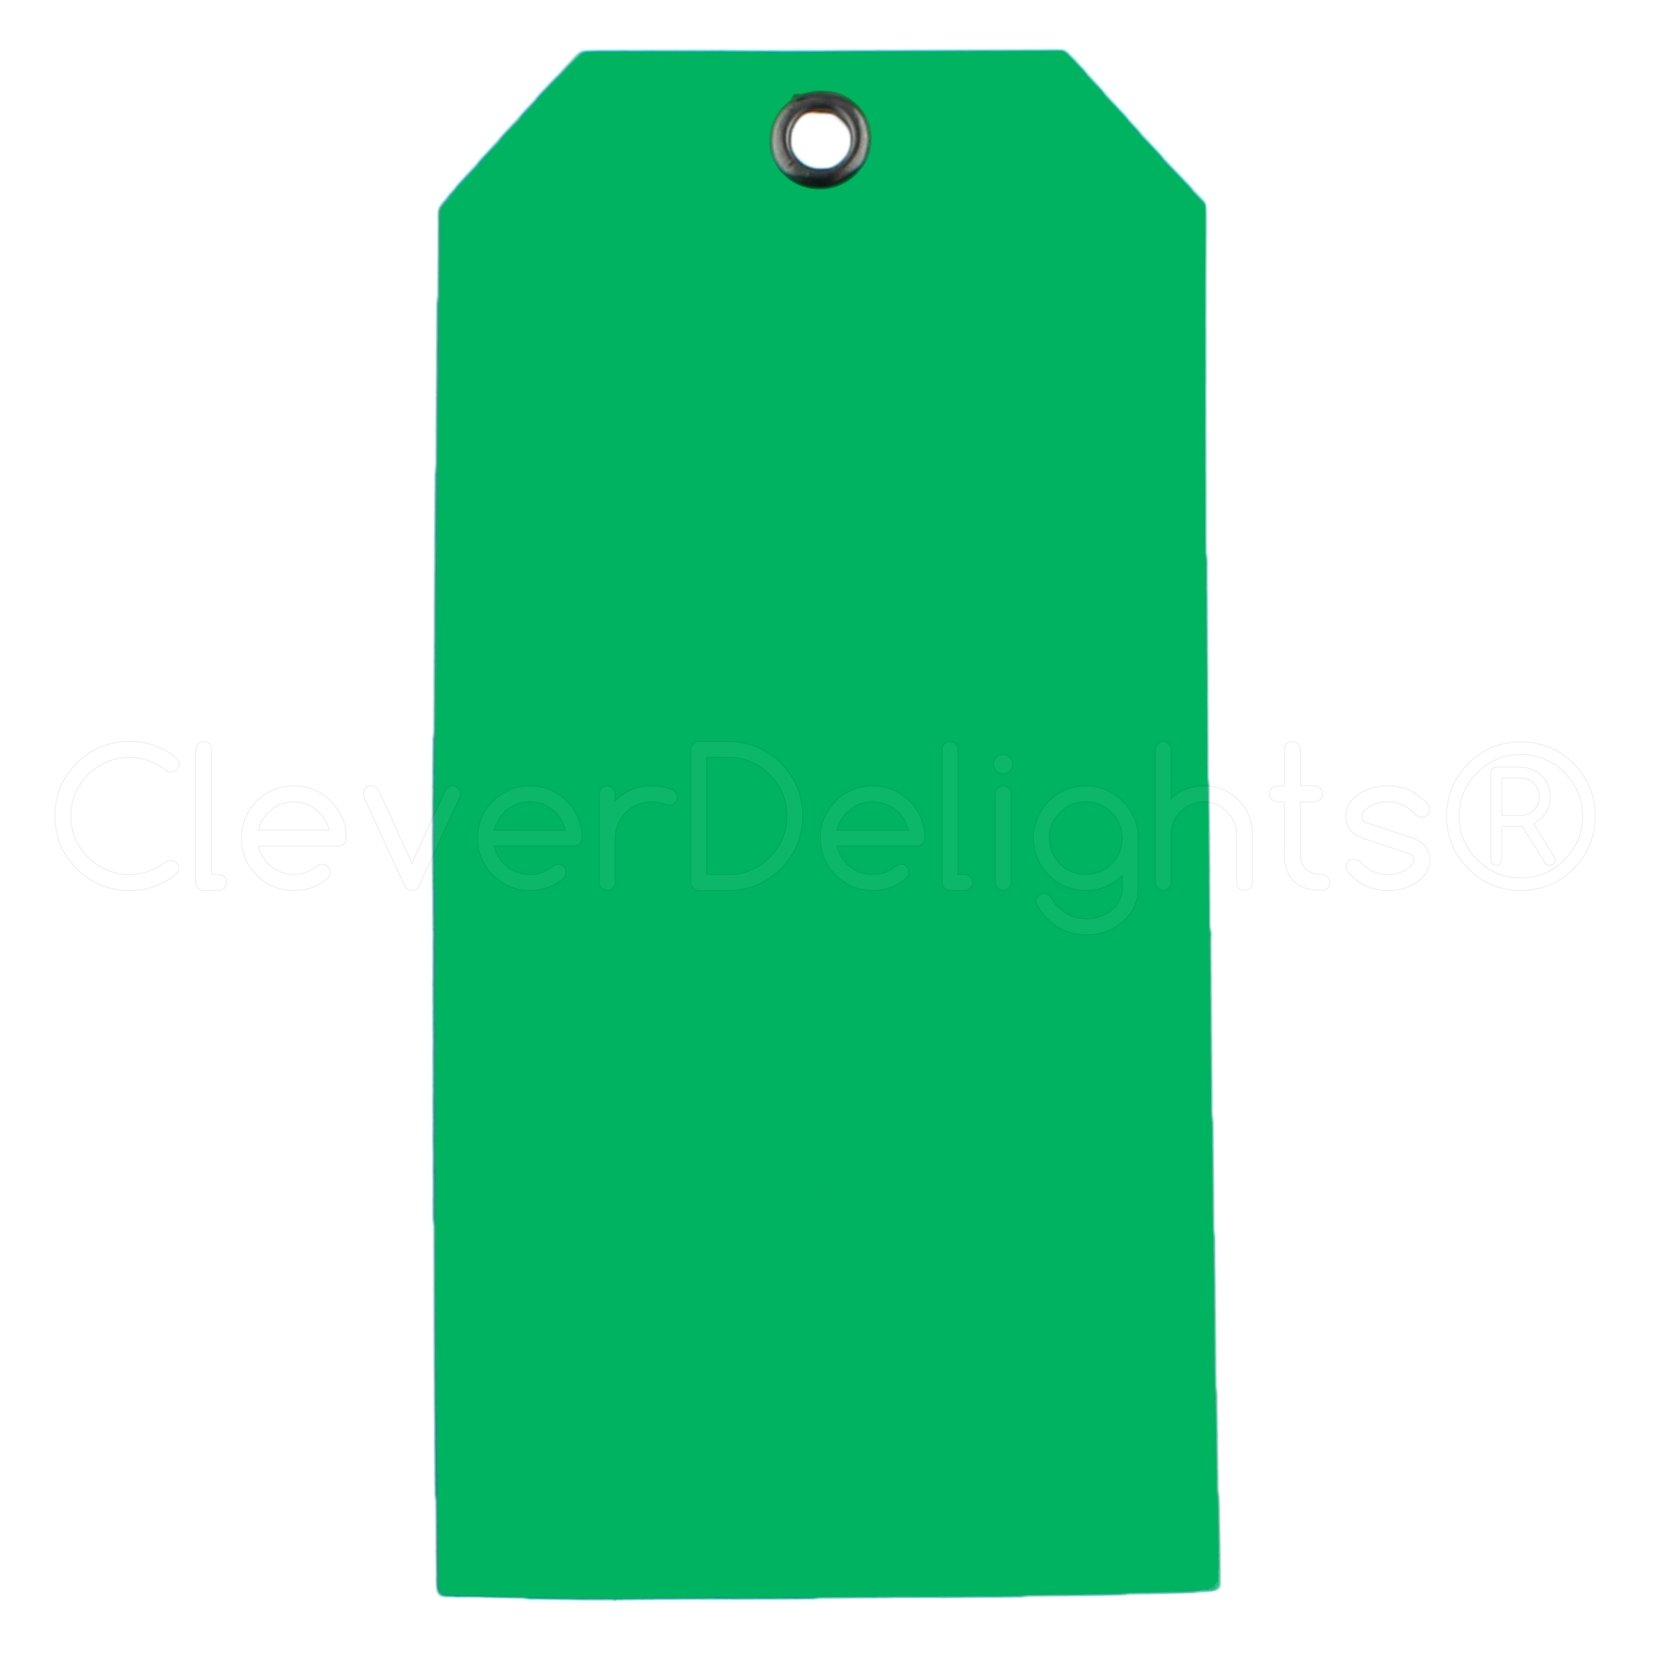 100 Pack - CleverDelights Green Plastic Tags - 4.75'' x 2.375'' - Tear-Proof and Waterproof - Inventory Asset Identification Price Tags